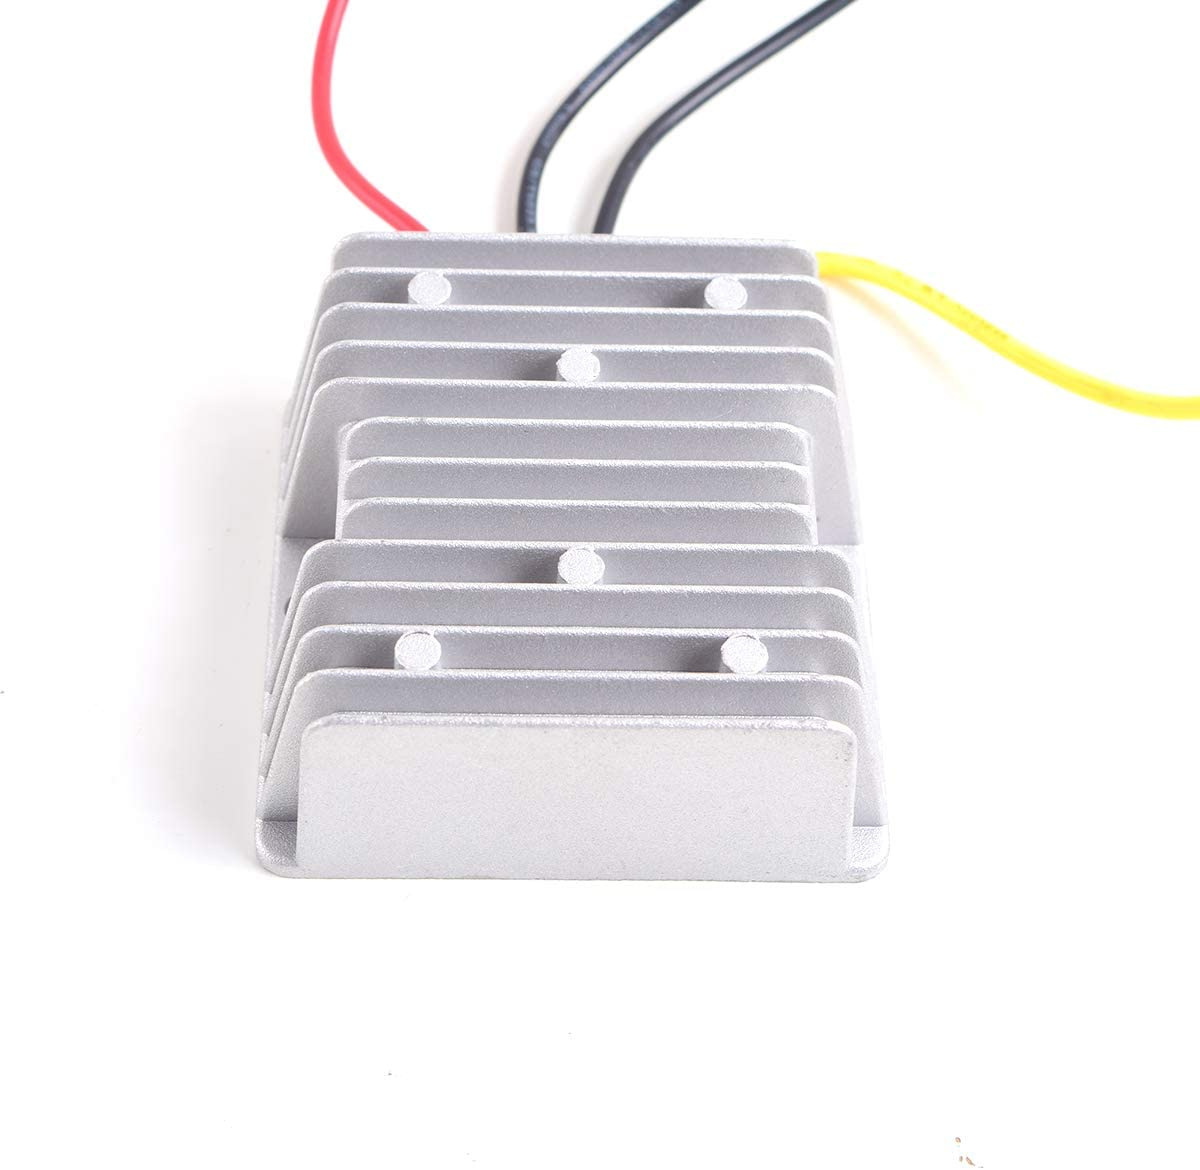 Cocar Step Down DC 24V to 12V 15A 180W Converter, Accept DC15-40V Inputs Regulator Power Adapter for Auto Motor Car Truck Vehicle Boat Solar System